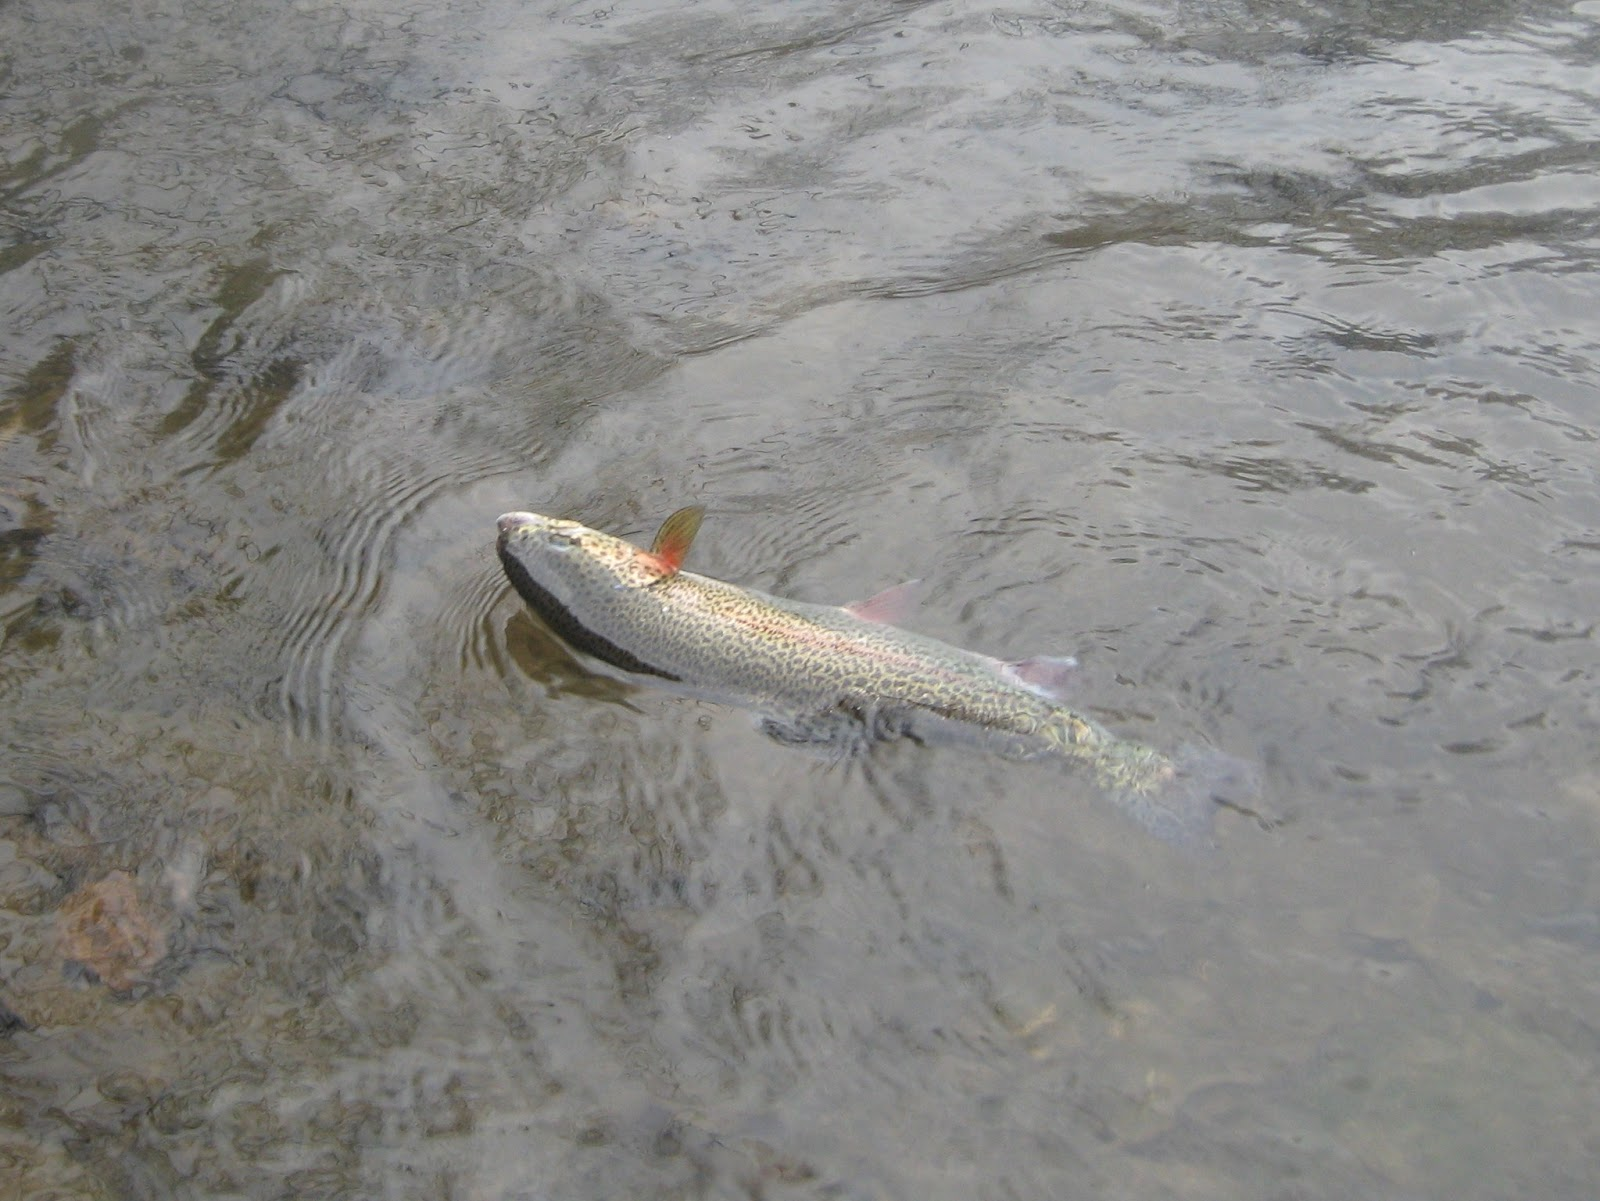 Minnesota driftless fly fishing trip report cold cold cold for Driftless fly fishing